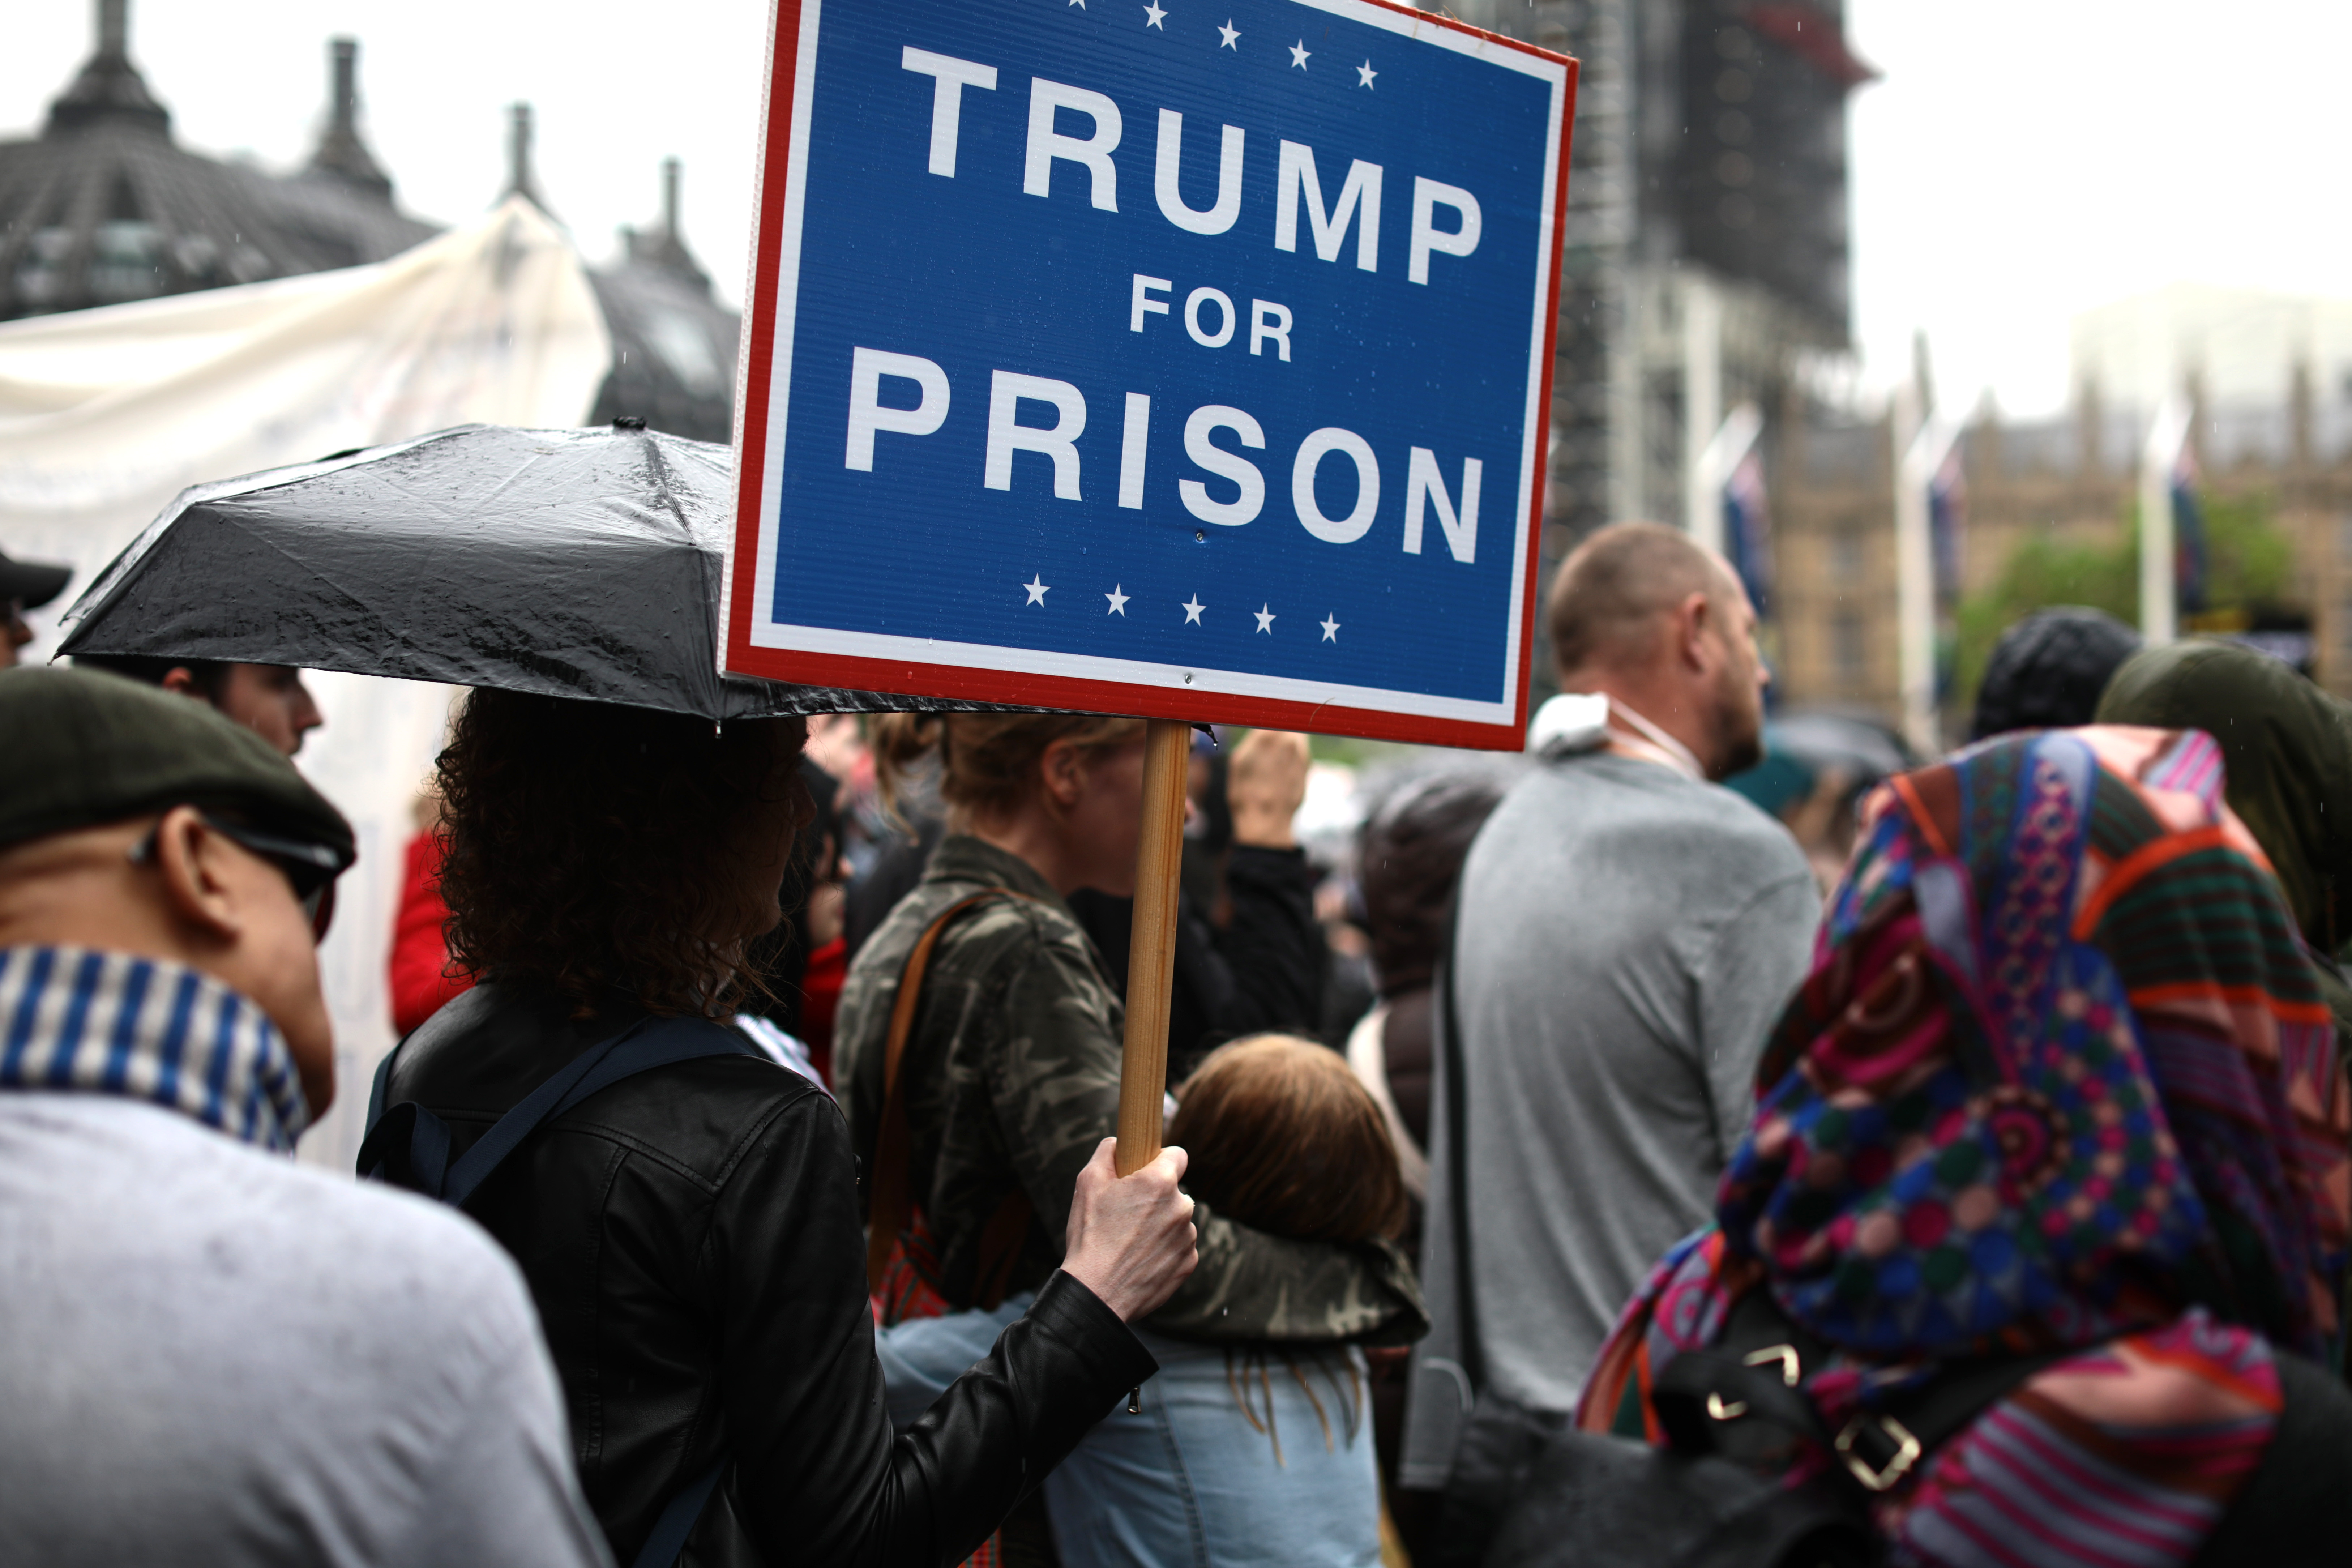 Protesters holding placards stand in the rain at Parliament Square as President Trump and first lady Melania Trump visit 10 Downing street for a meeting on June 4, 2019 in London.